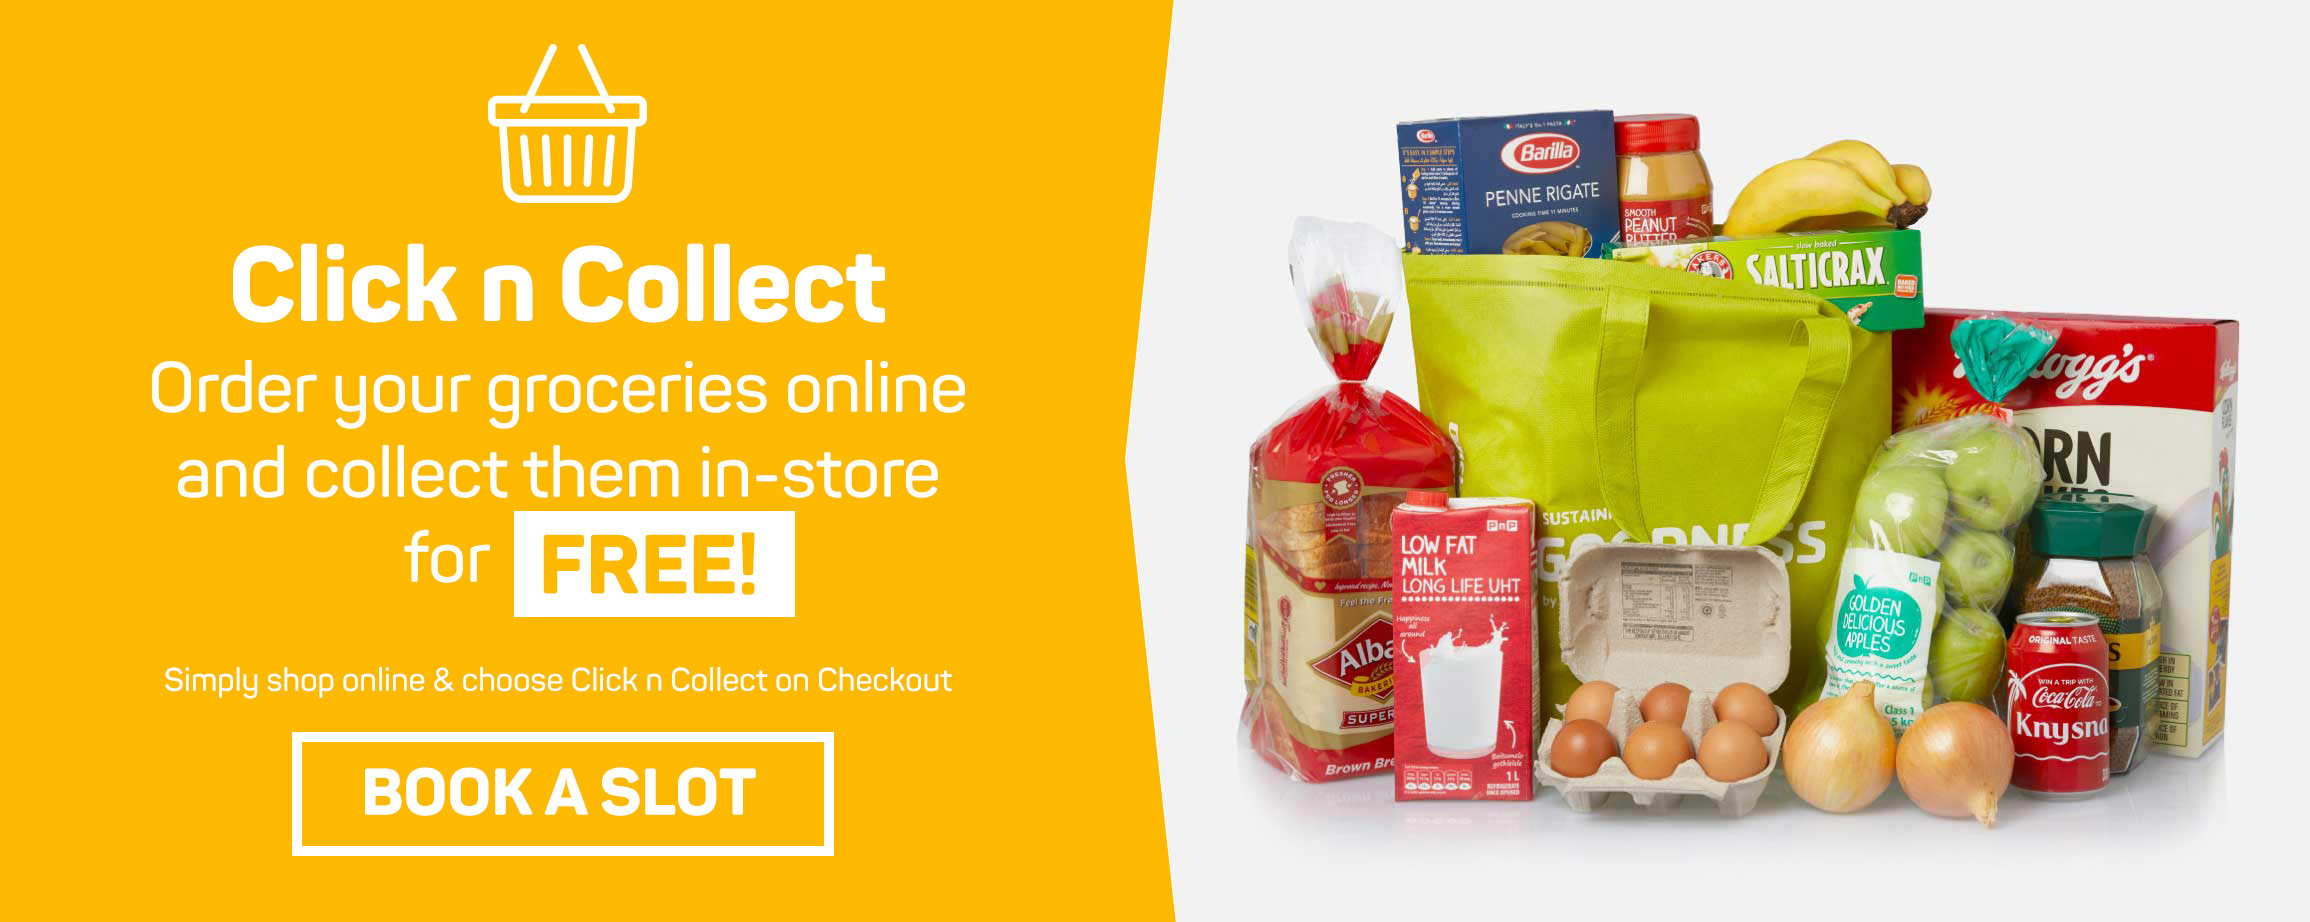 Click n Collect. Order your groceries online and collect them in-store for FREE!